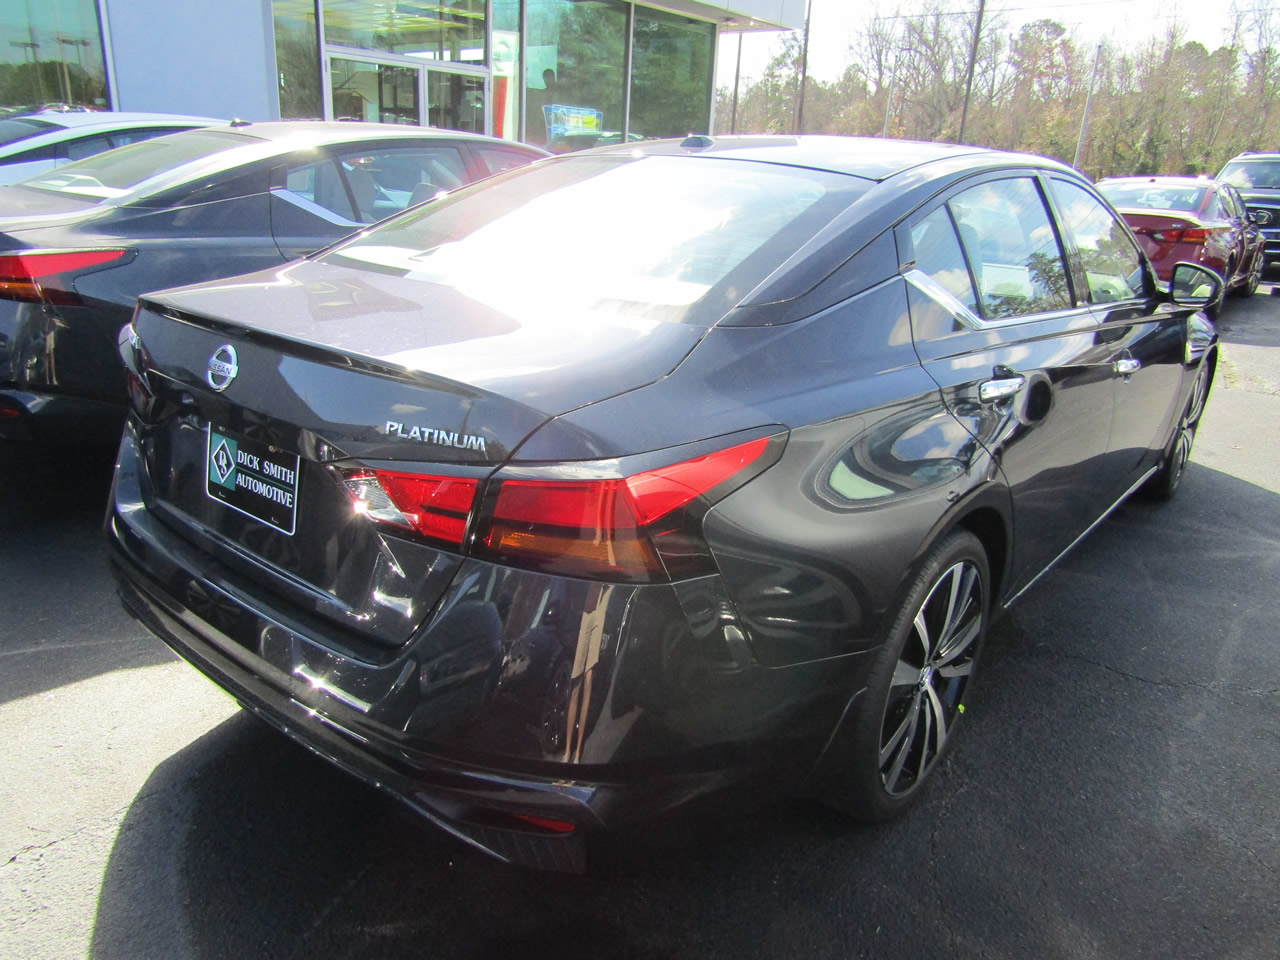 Dick Smith Nissan >> NEW 2019 NISSAN ALTIMA PLATINUM VIN 1N4BL4FV5KC182182 ...